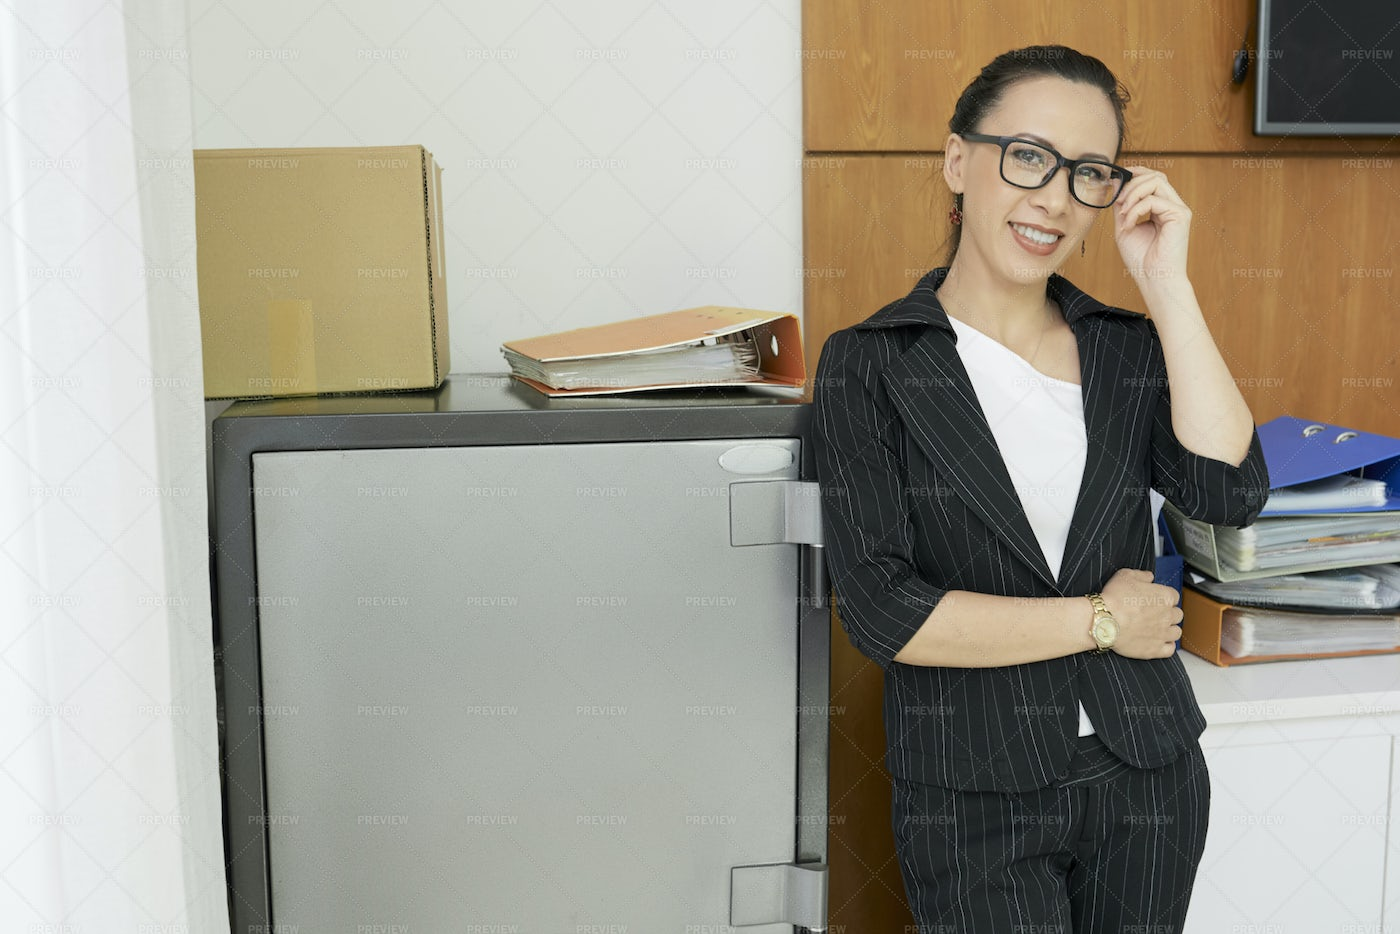 Manager Standing Near The Safe At: Stock Photos